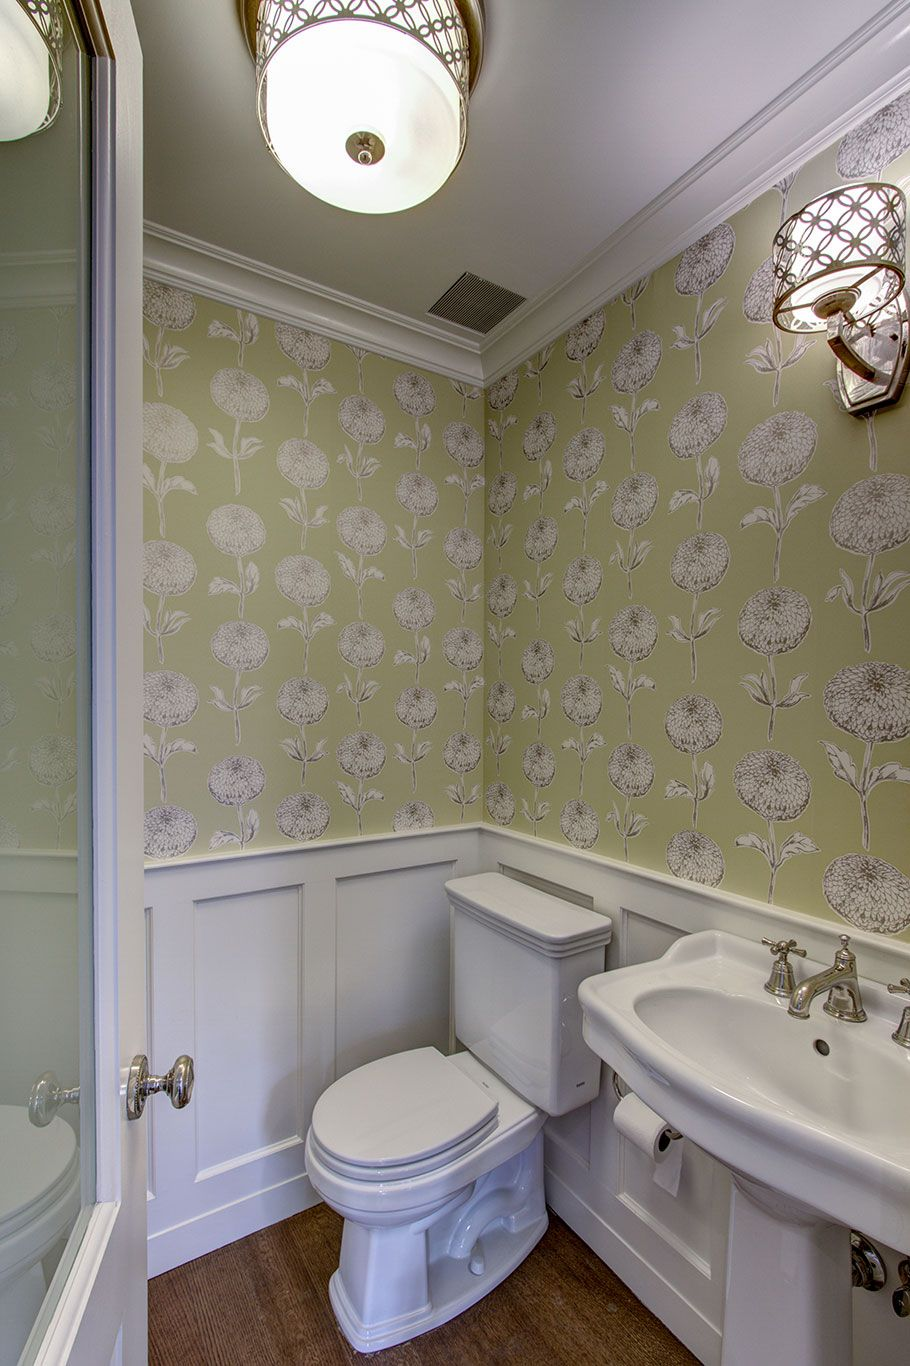 Superior Floral Wallpaper Gets An Update With A Large, Graphic Pattern. A Pedestal  Sink Saves Space, And Millwork Is Paintedwhite, Another Space Expanding  Trick.